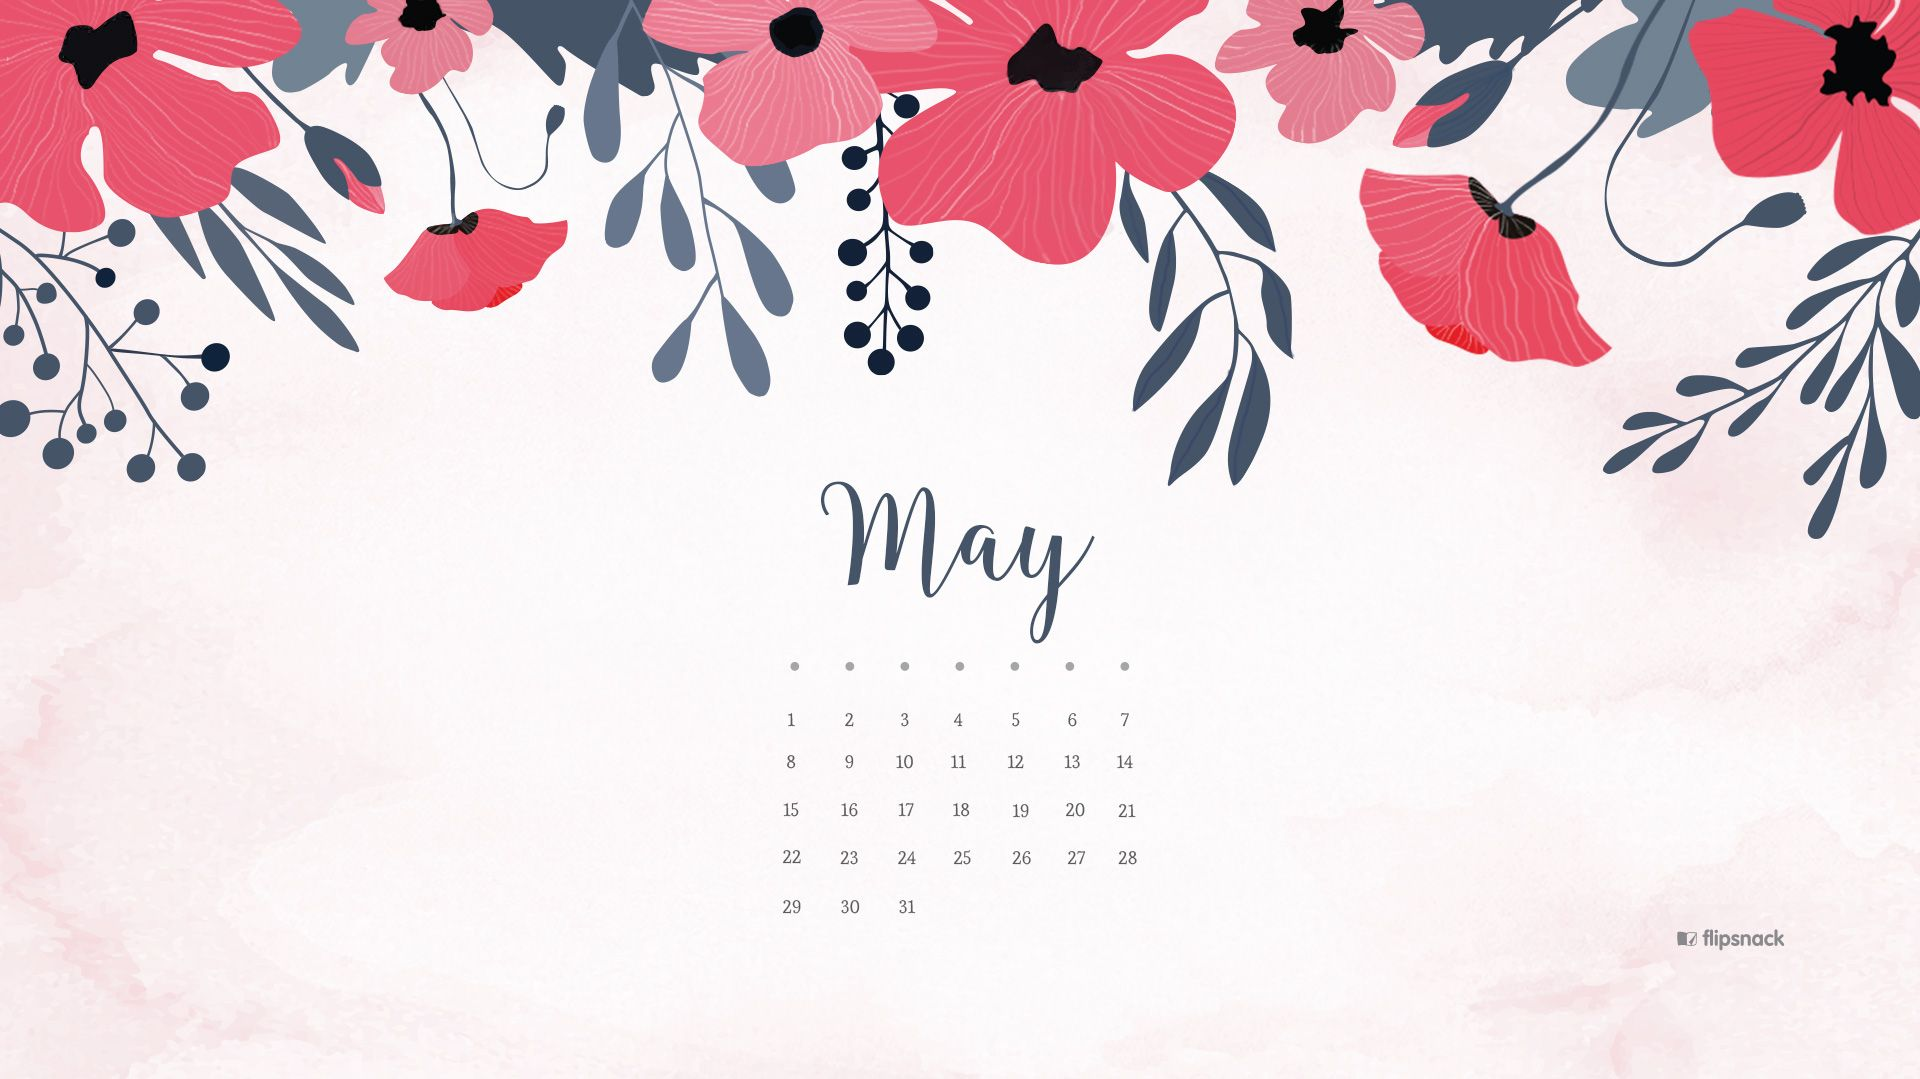 may 2016 desktop calendar   Google Search Desktop Backgrounds 1920x1079